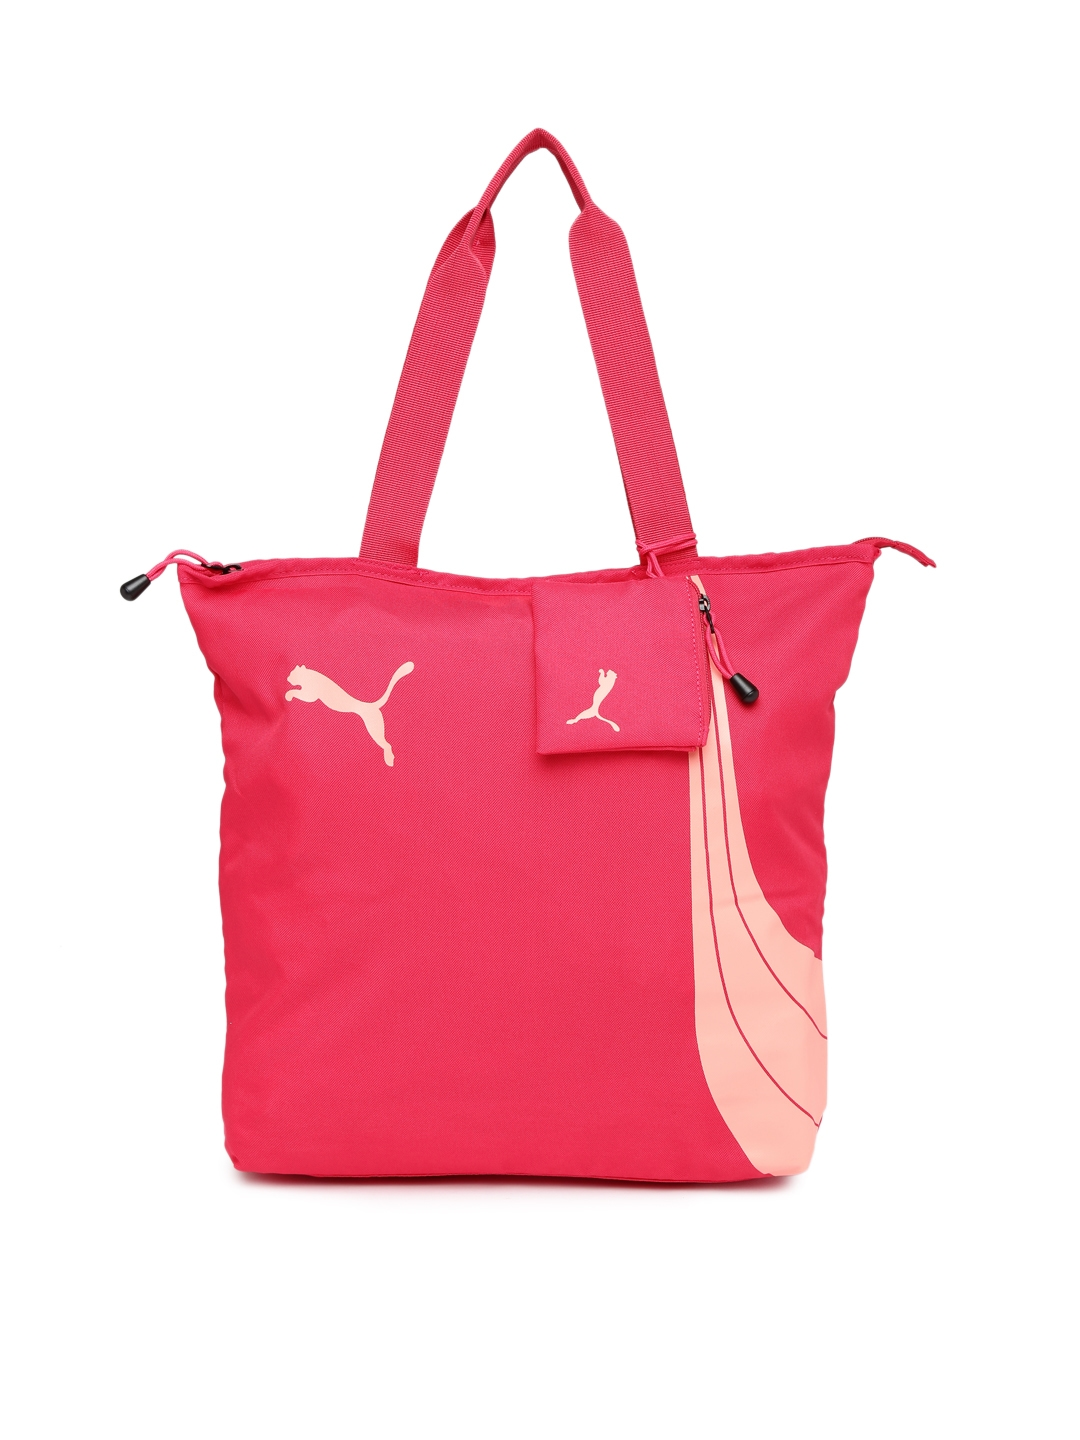 puma shoulder bag pink on sale   OFF44% Discounts 42405c798b500